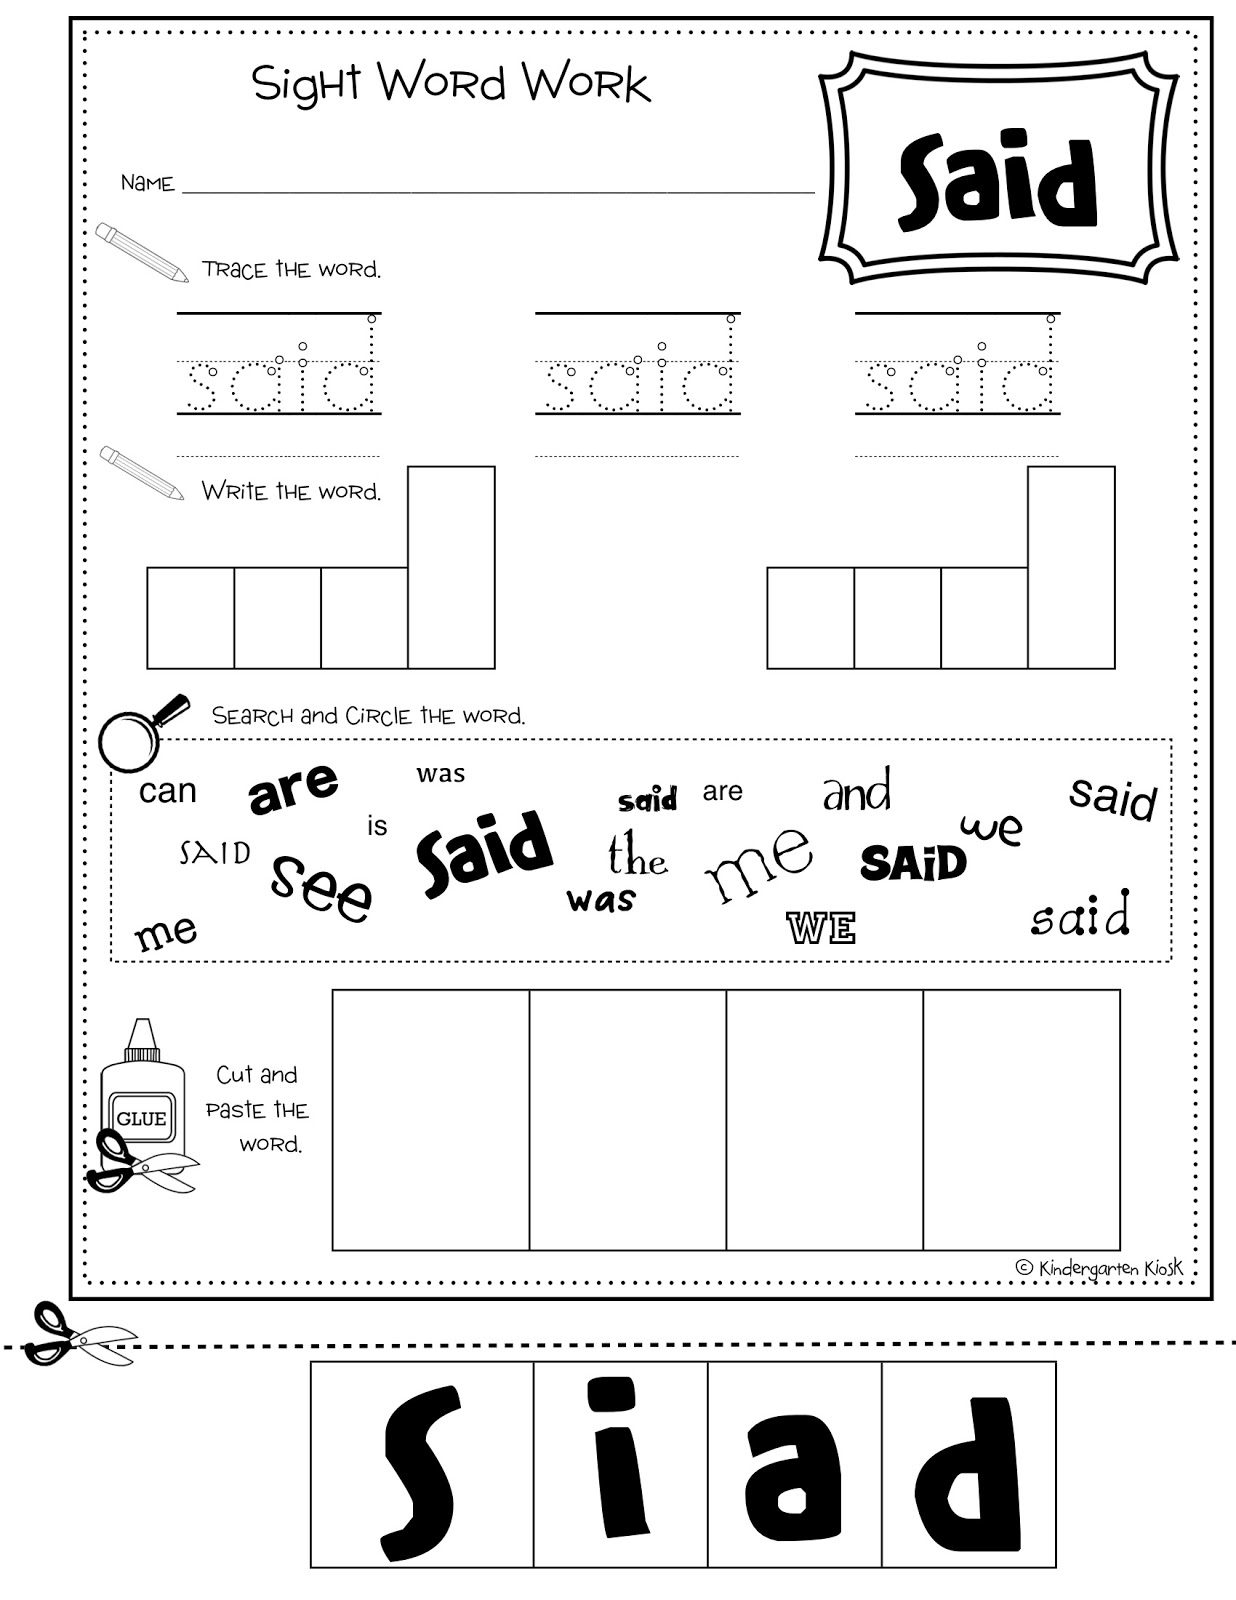 Sight Kindergarten Workbook  Kiosk: word sight like Multi Word Task worksheets